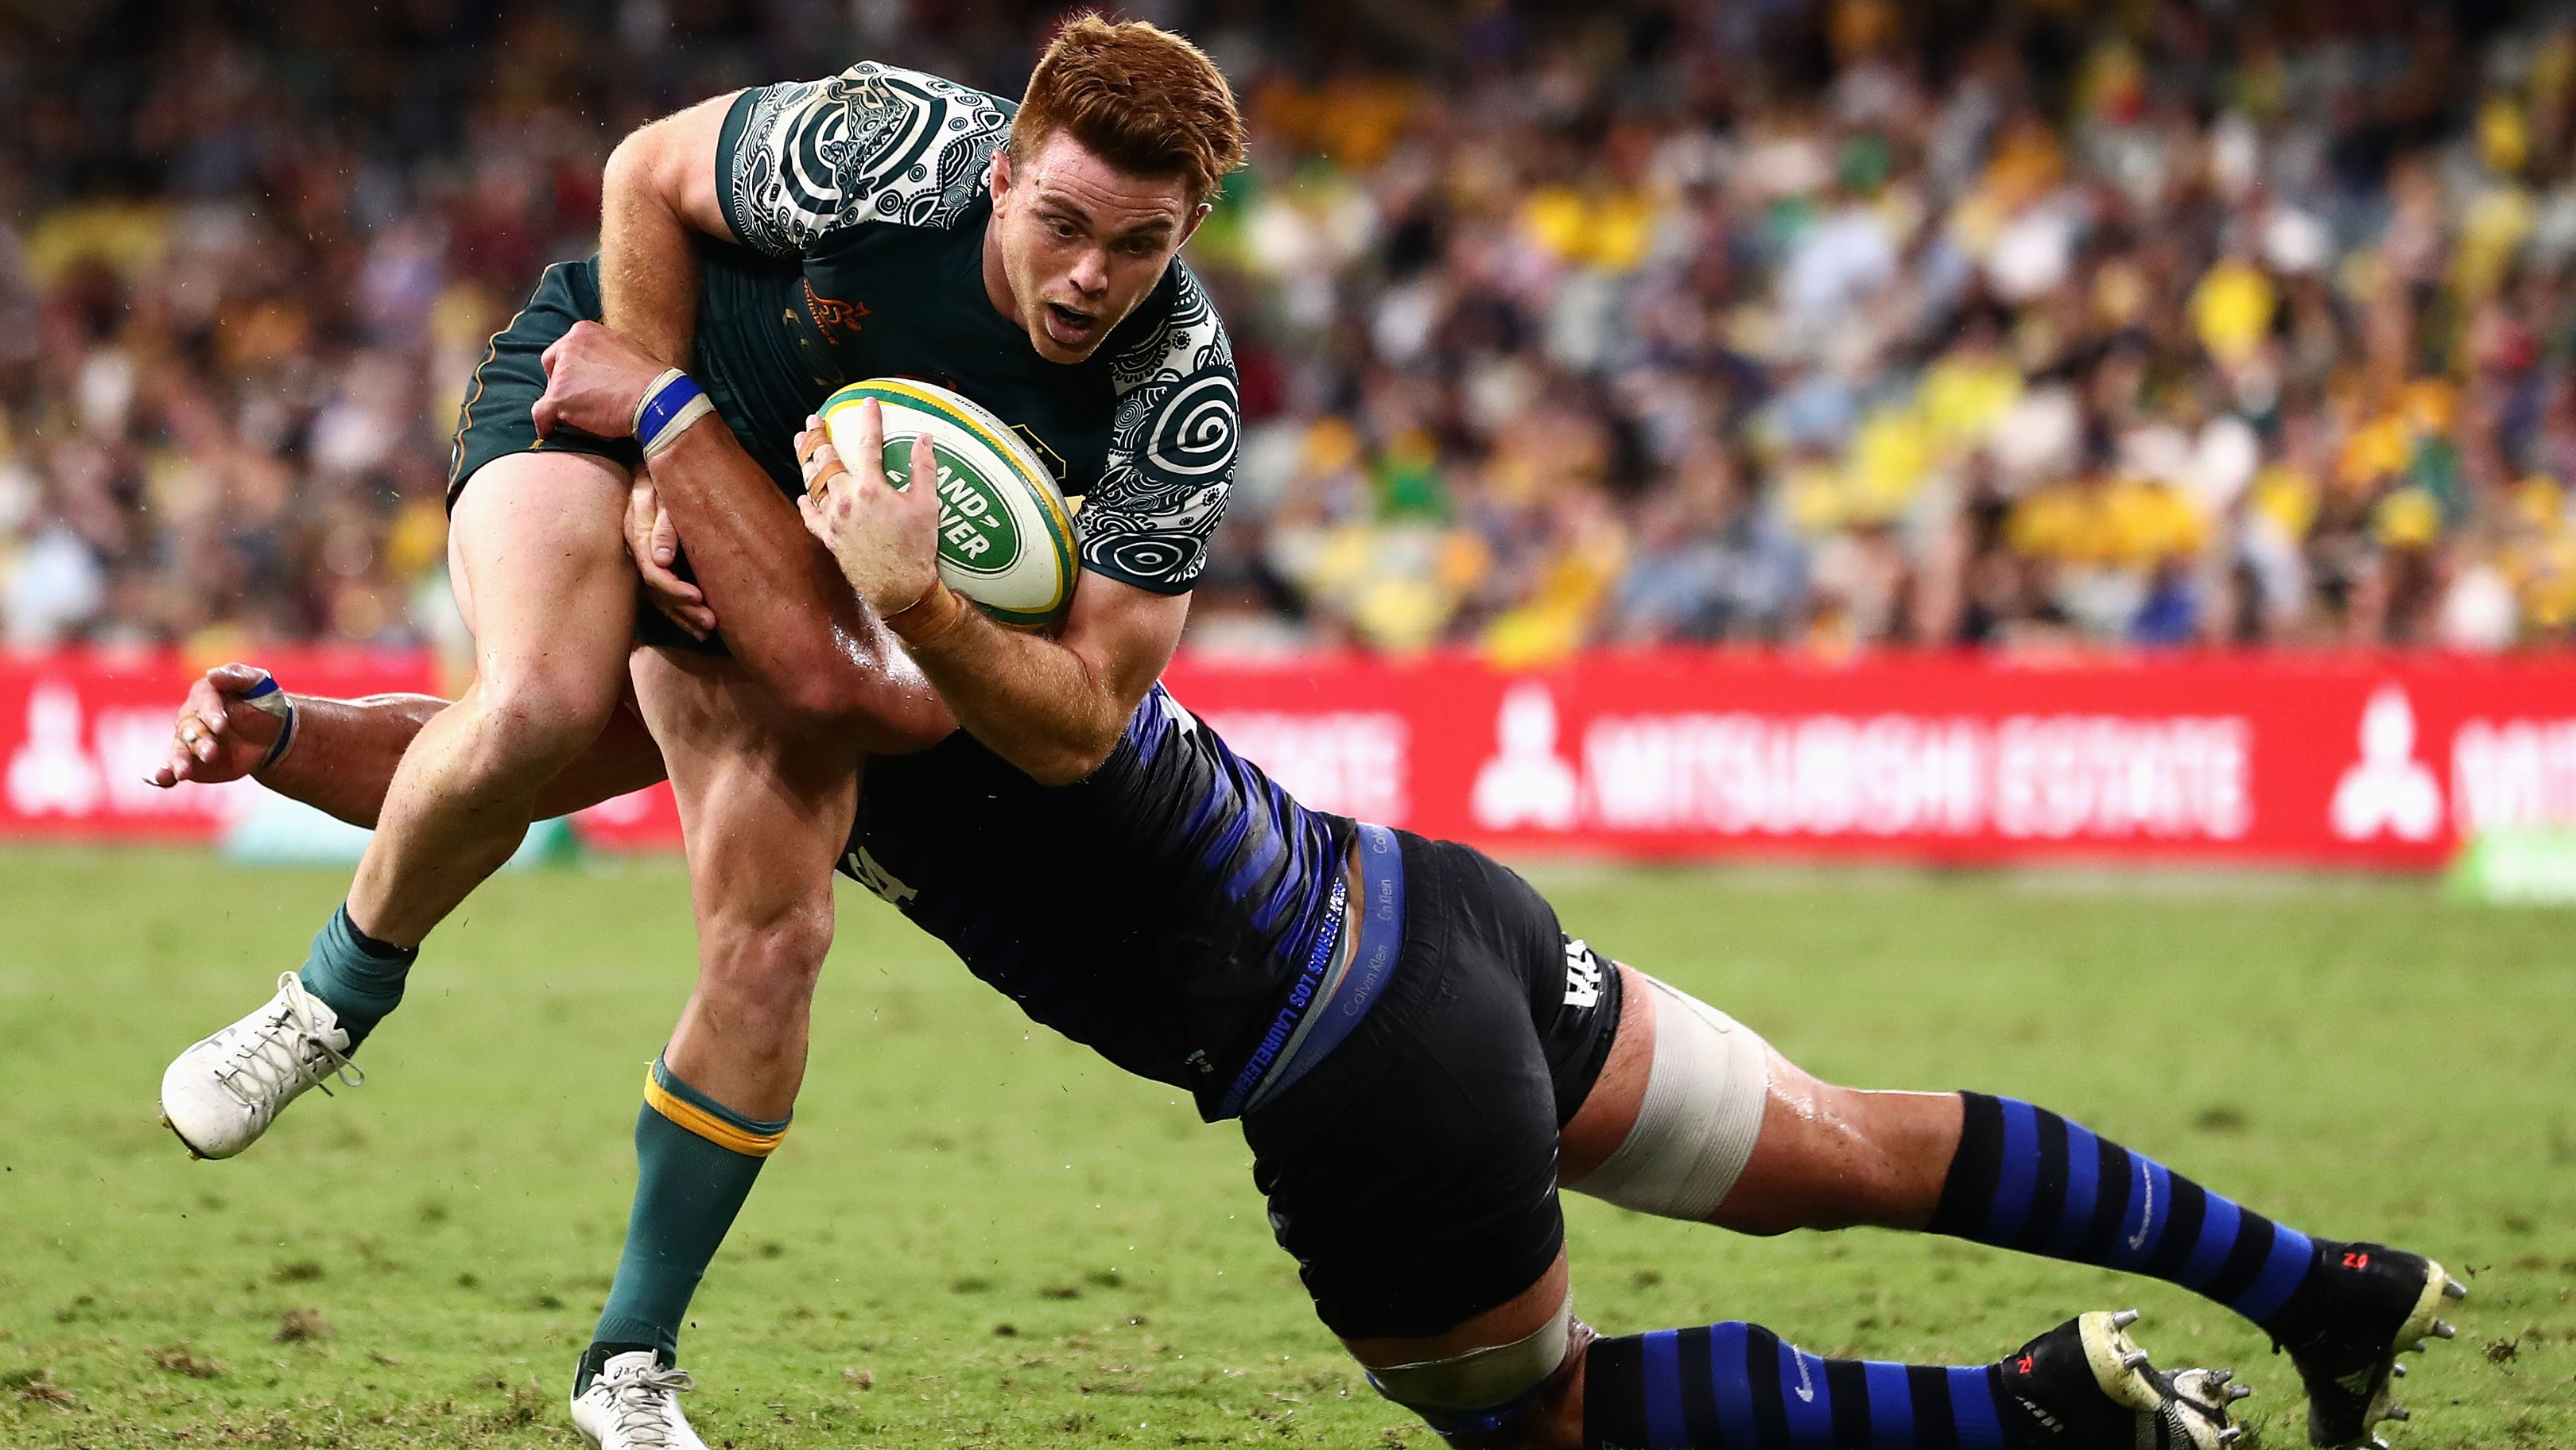 Australia's breakout rugby star delivers again